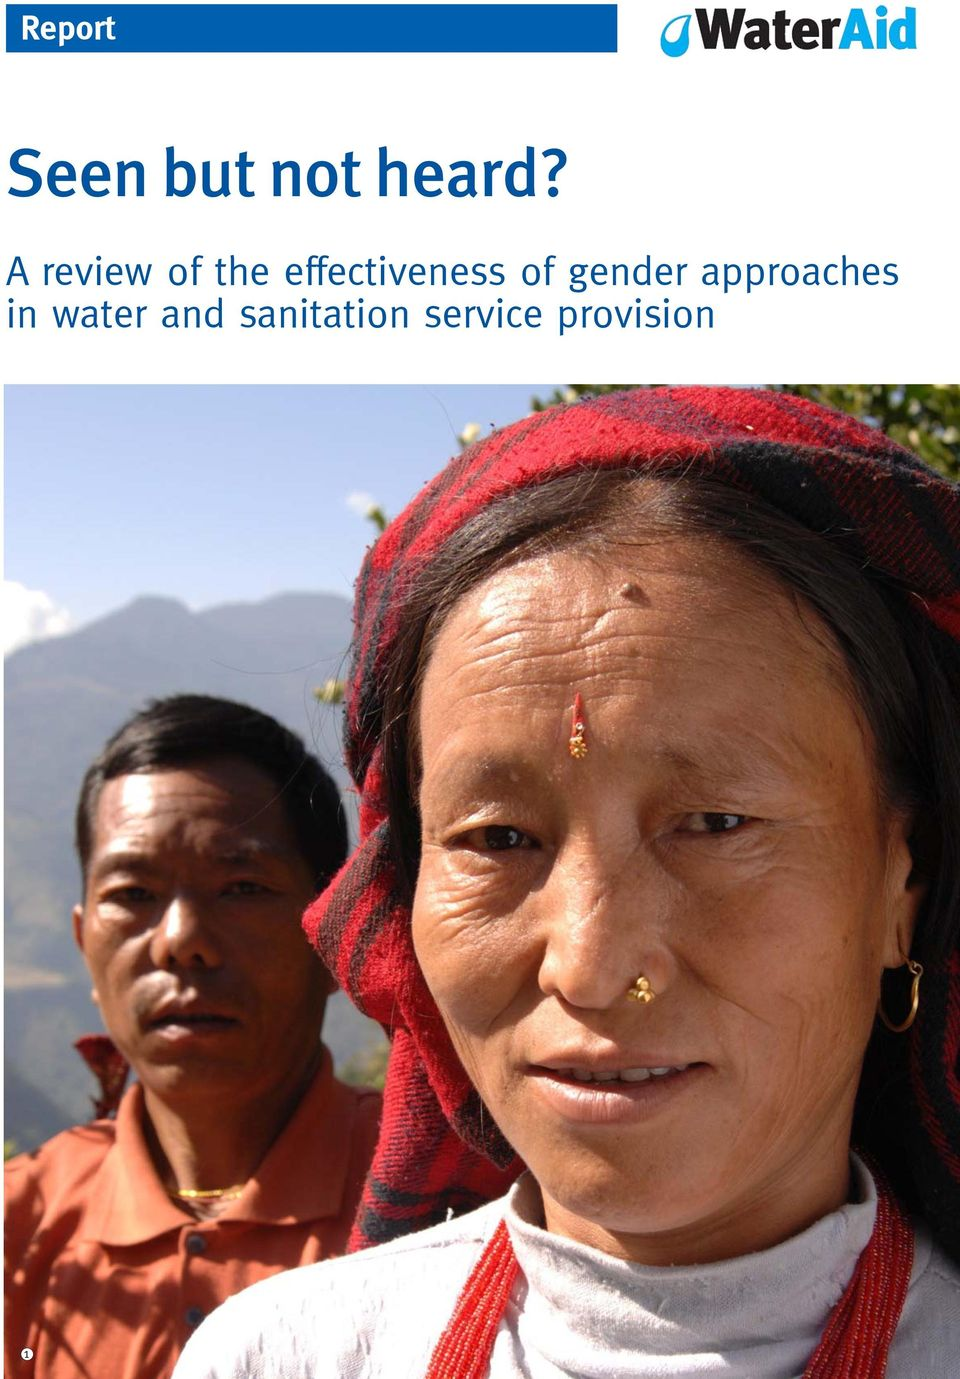 of gender approaches in water